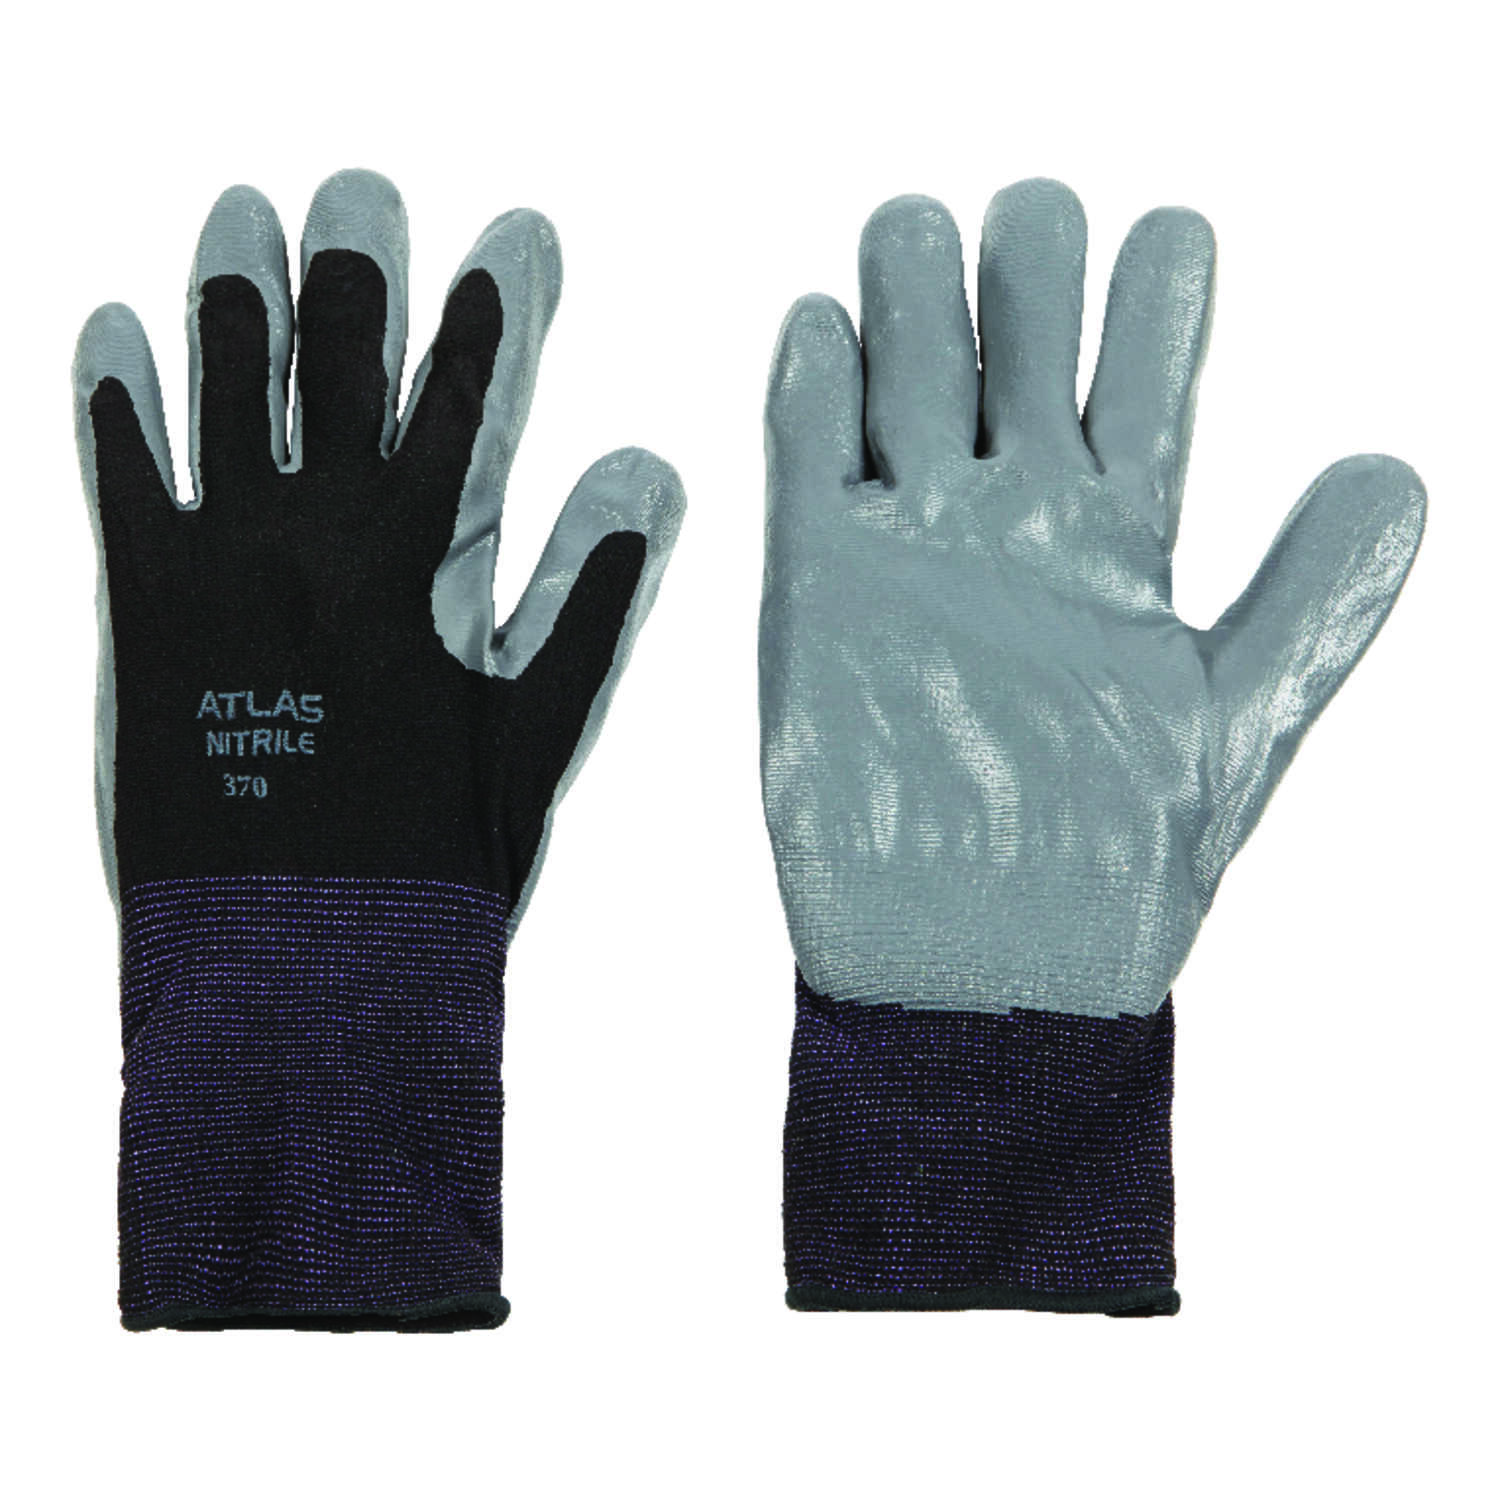 Atlas  Unisex  Indoor/Outdoor  Nitrile  Dipped  Gloves  Black/Gray  XL